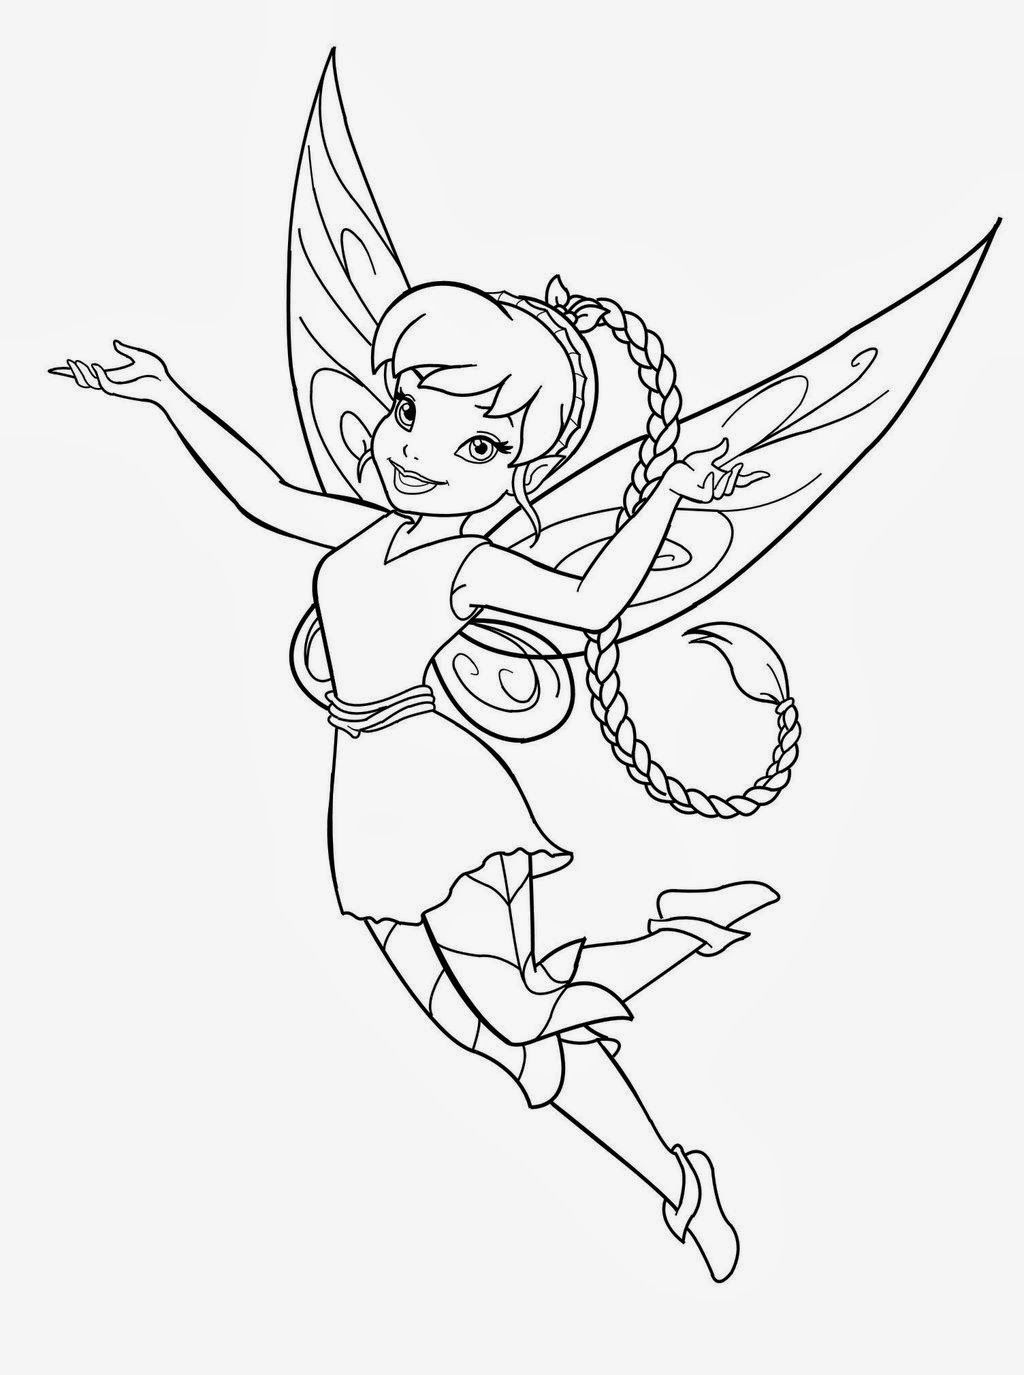 Printable Fairy Coloring Pages Con Imagenes Dibujos De Hadas